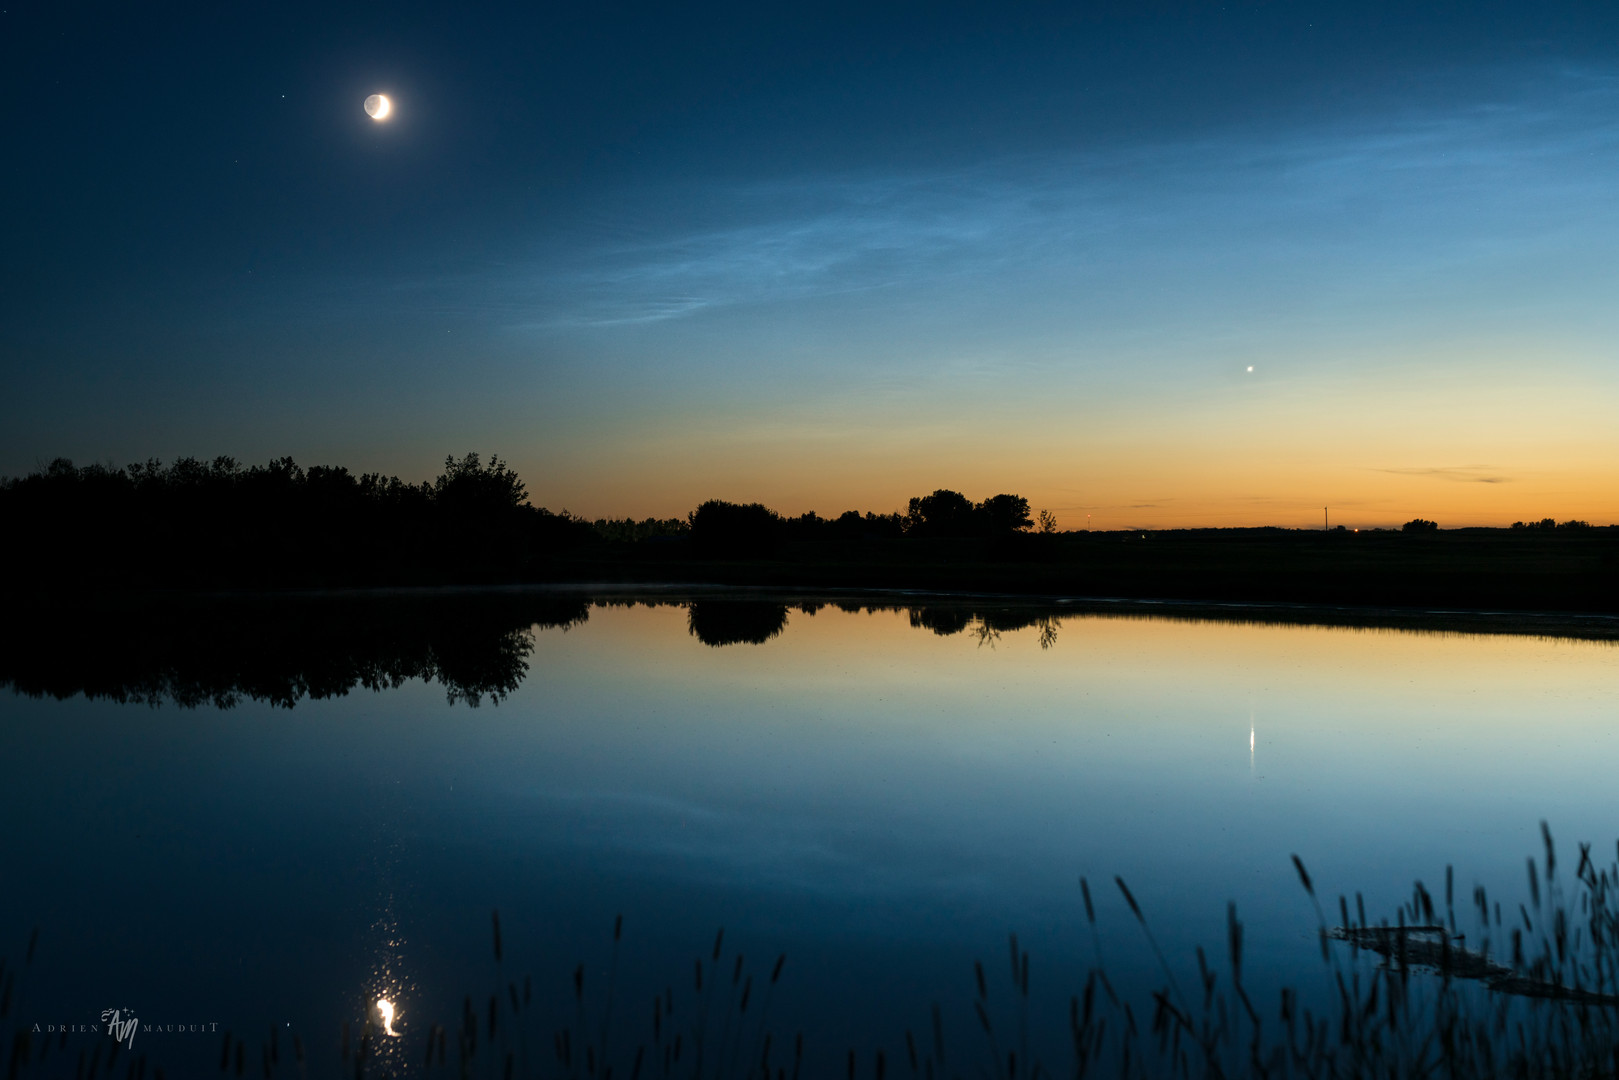 Moon, Venus and NLC in Canada